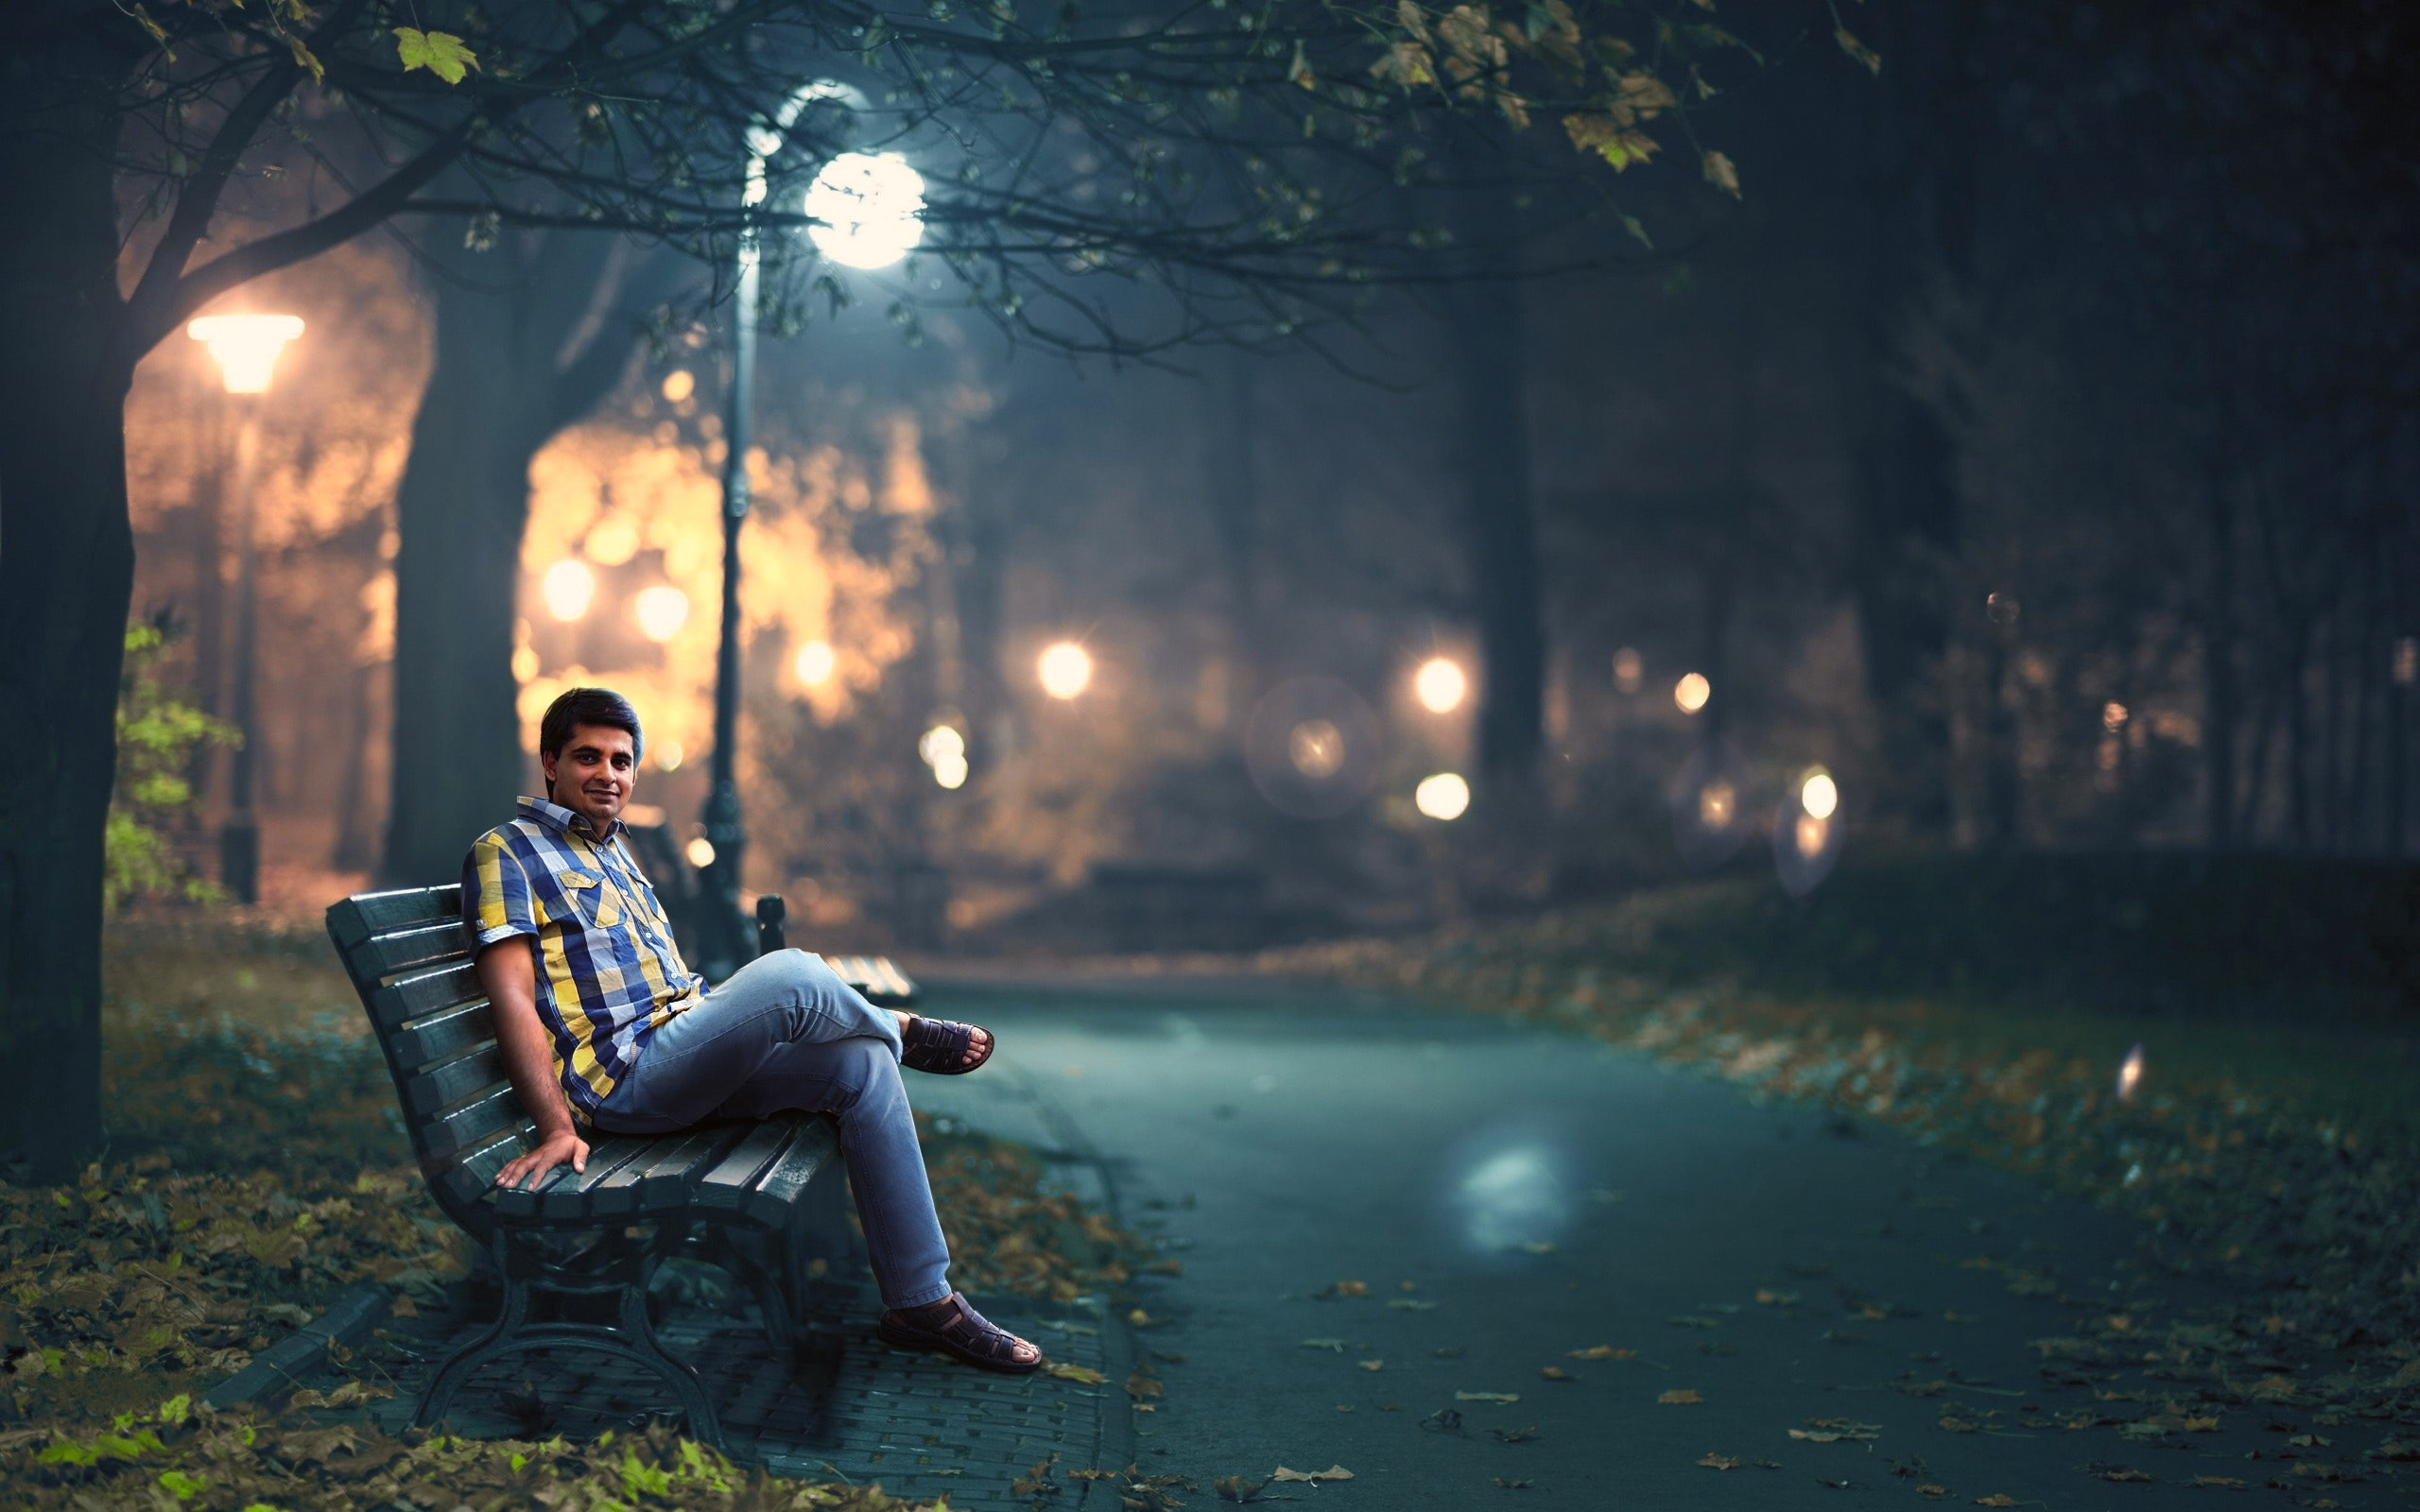 Man in Blue Denim Jeans Sitting Down by Wooden Bench Near Post Lamp Lighted, Adult, Outdoors, Street lamps, Street, HQ Photo